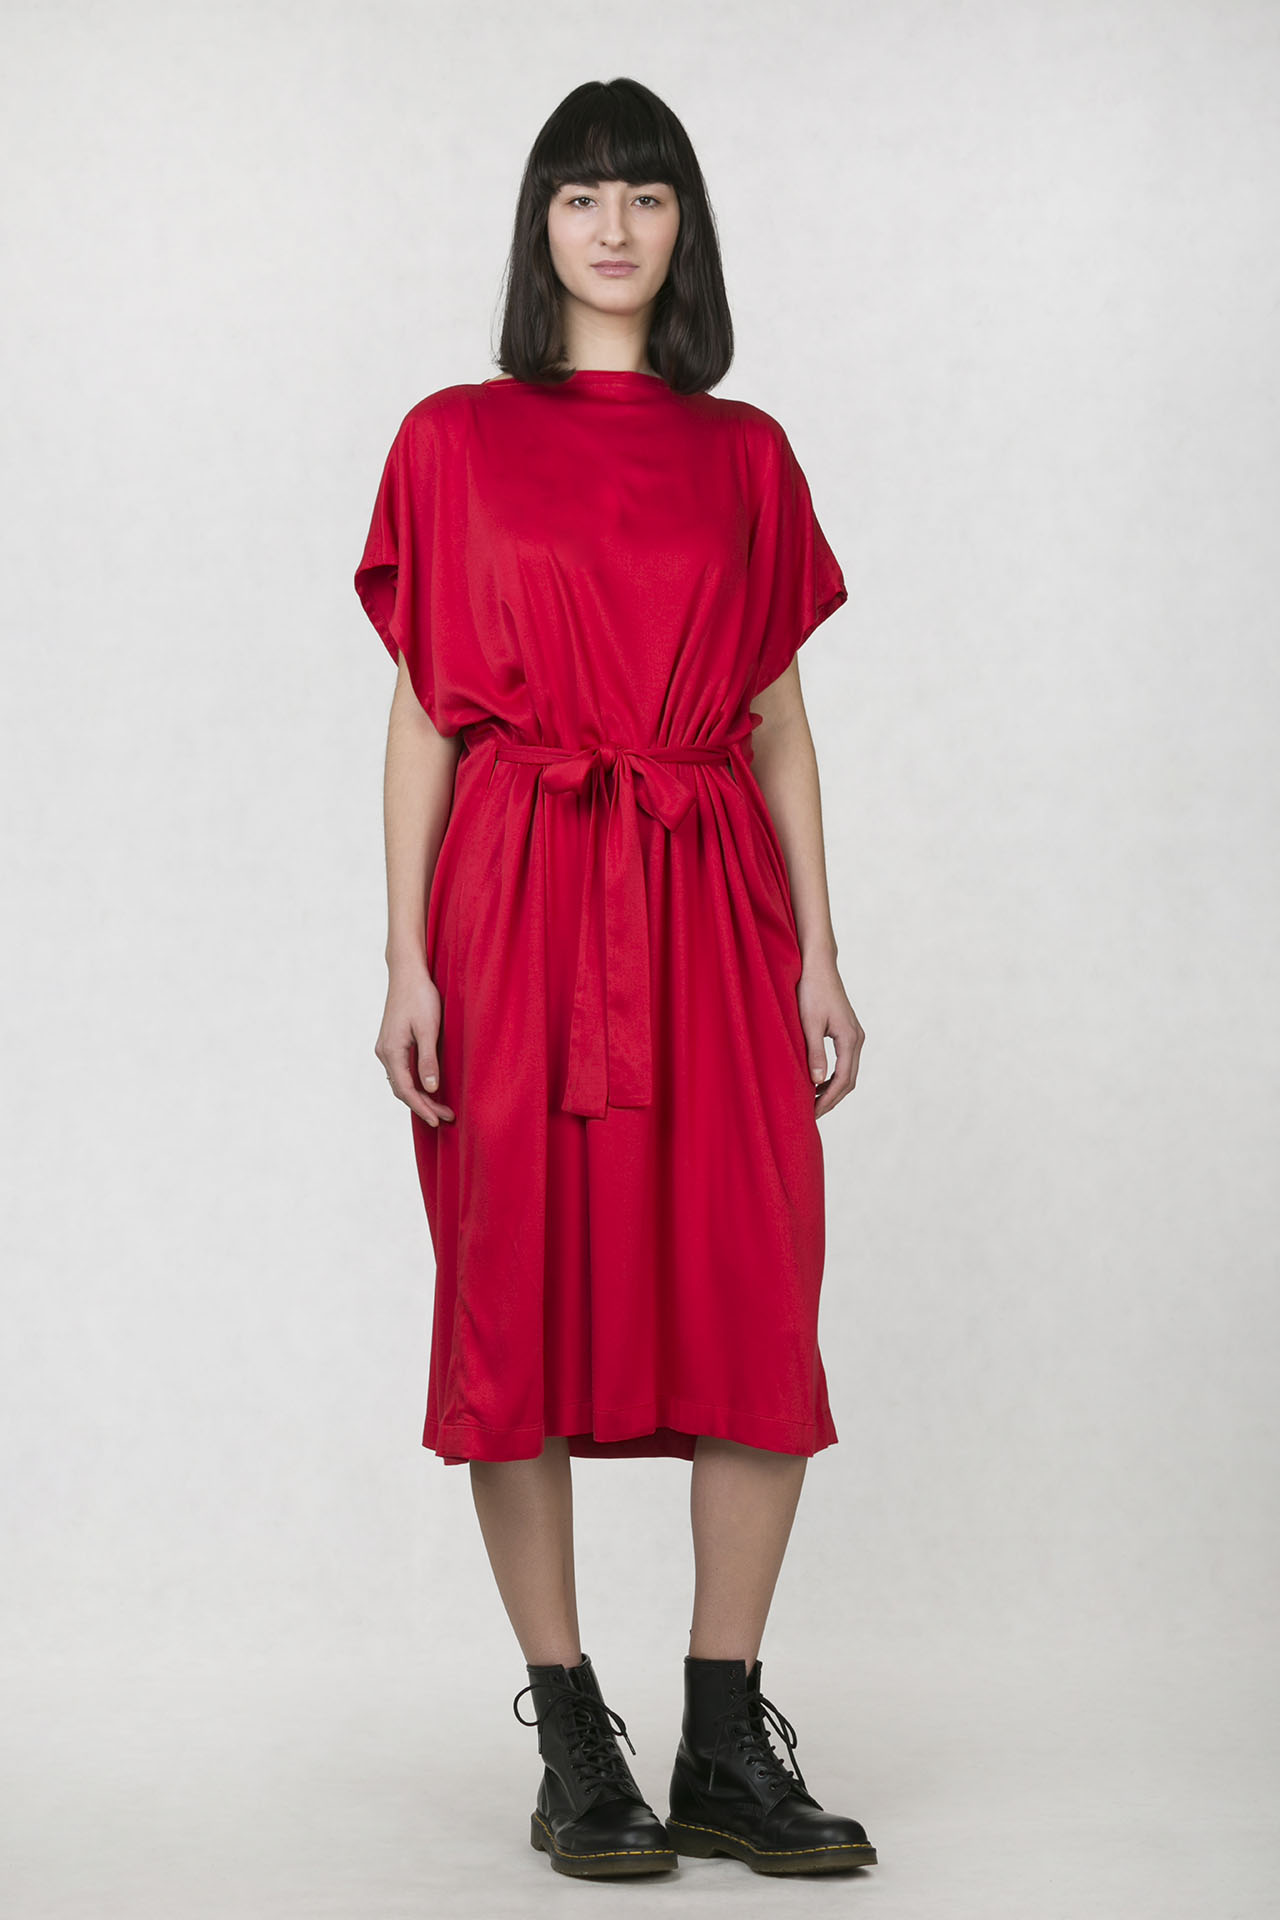 ONEDAY caesar dress red - one-day 072e963998